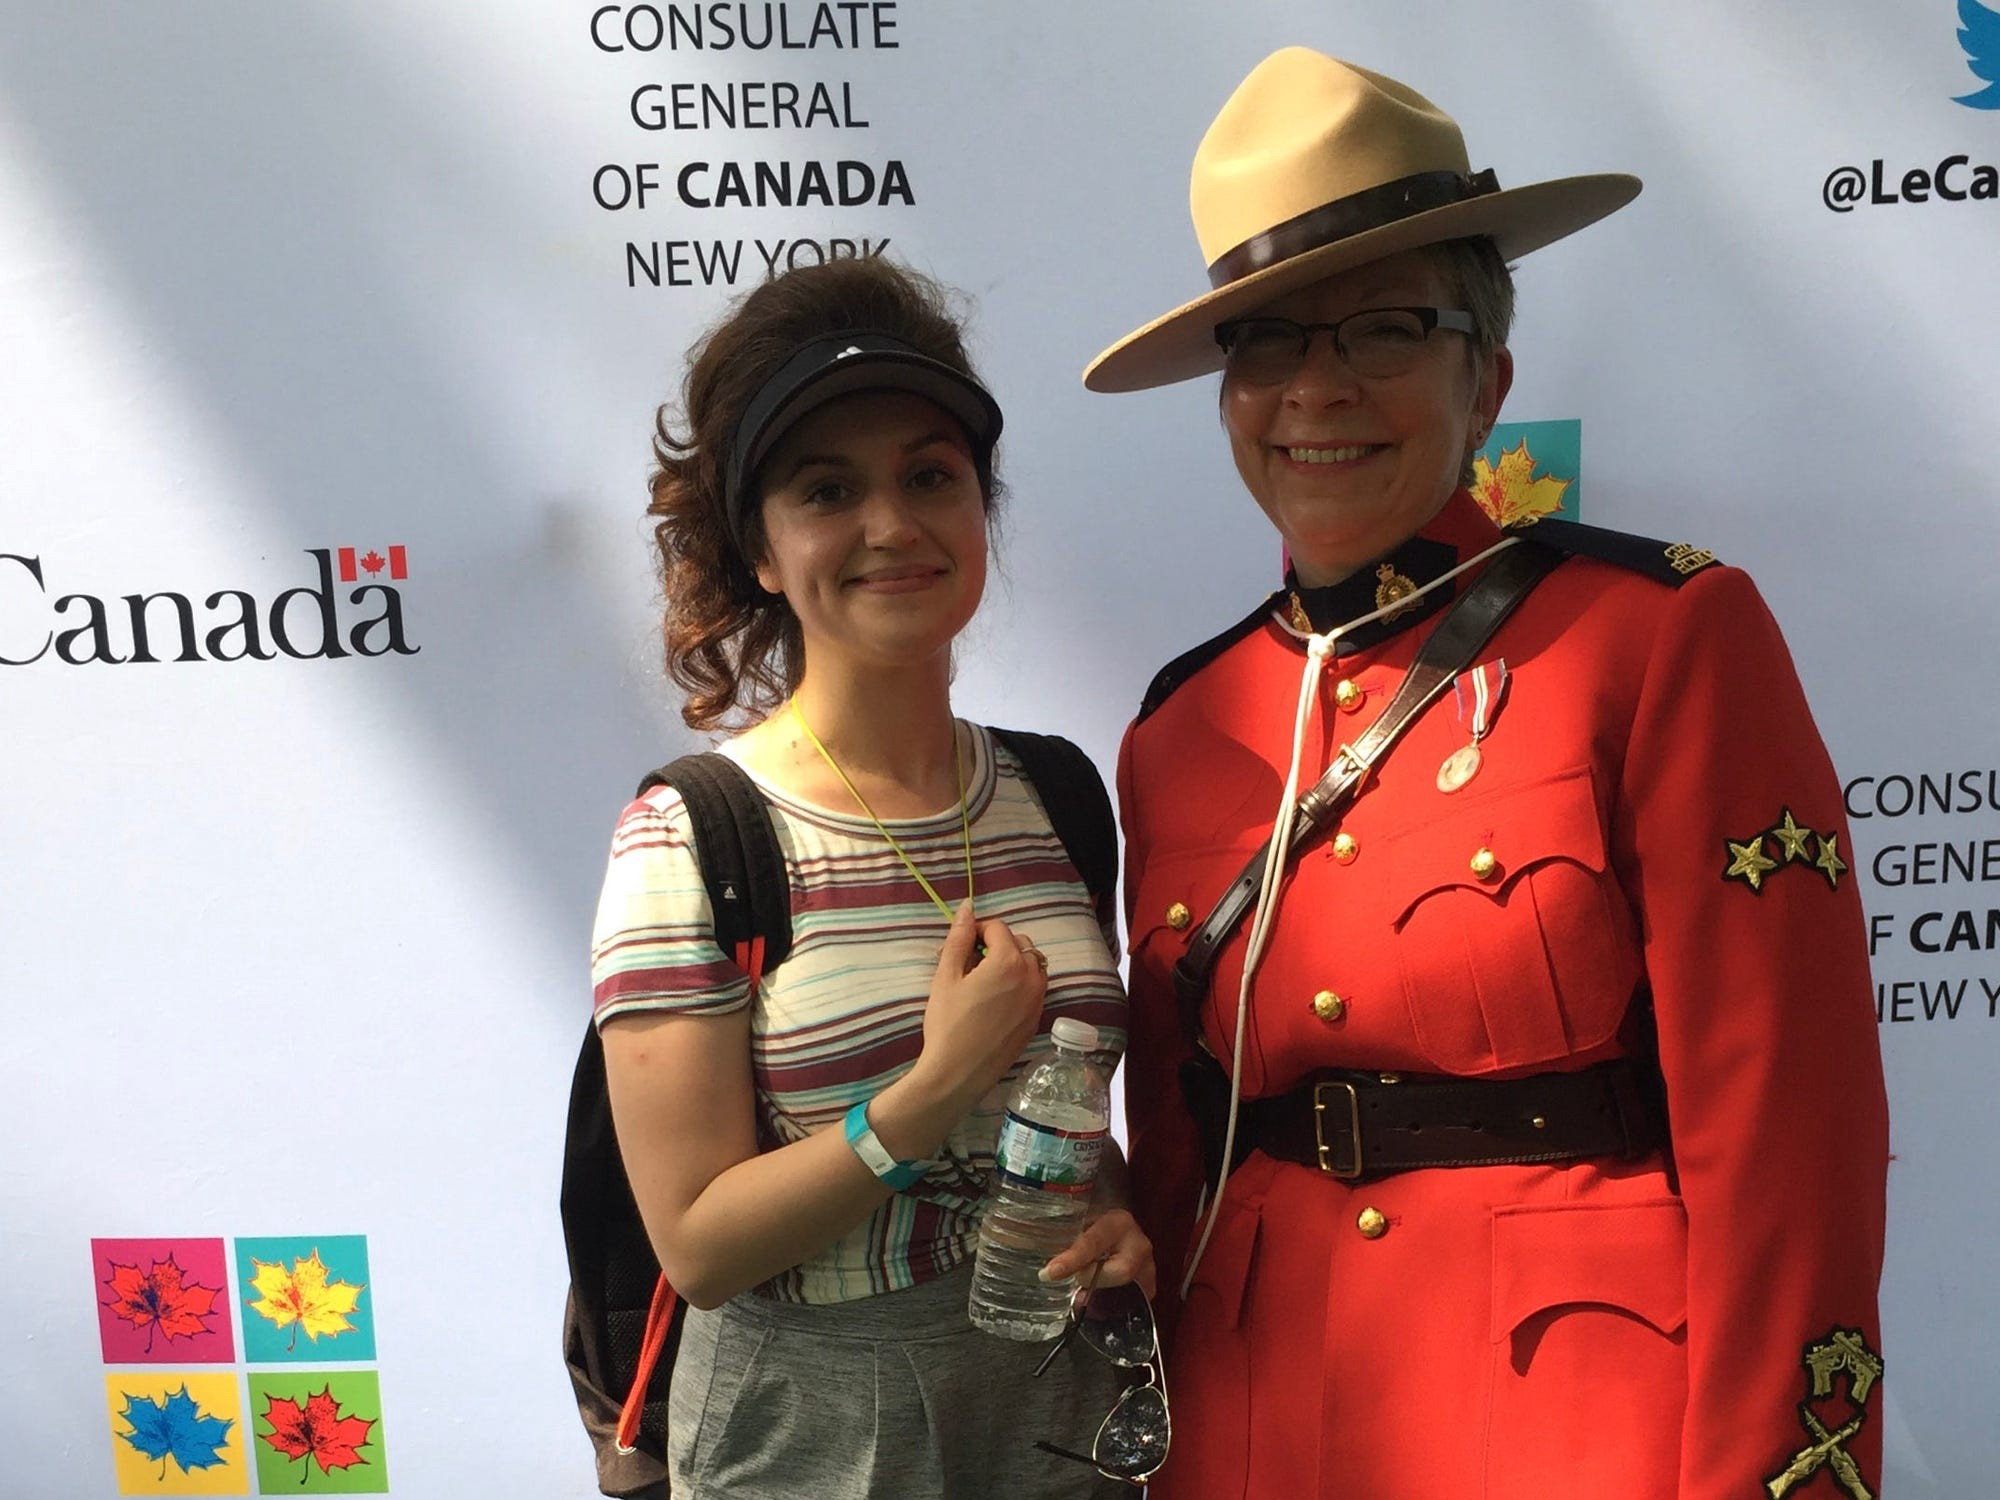 The author, Laila Maidan, left, at Canada Day celebrations in New York City.